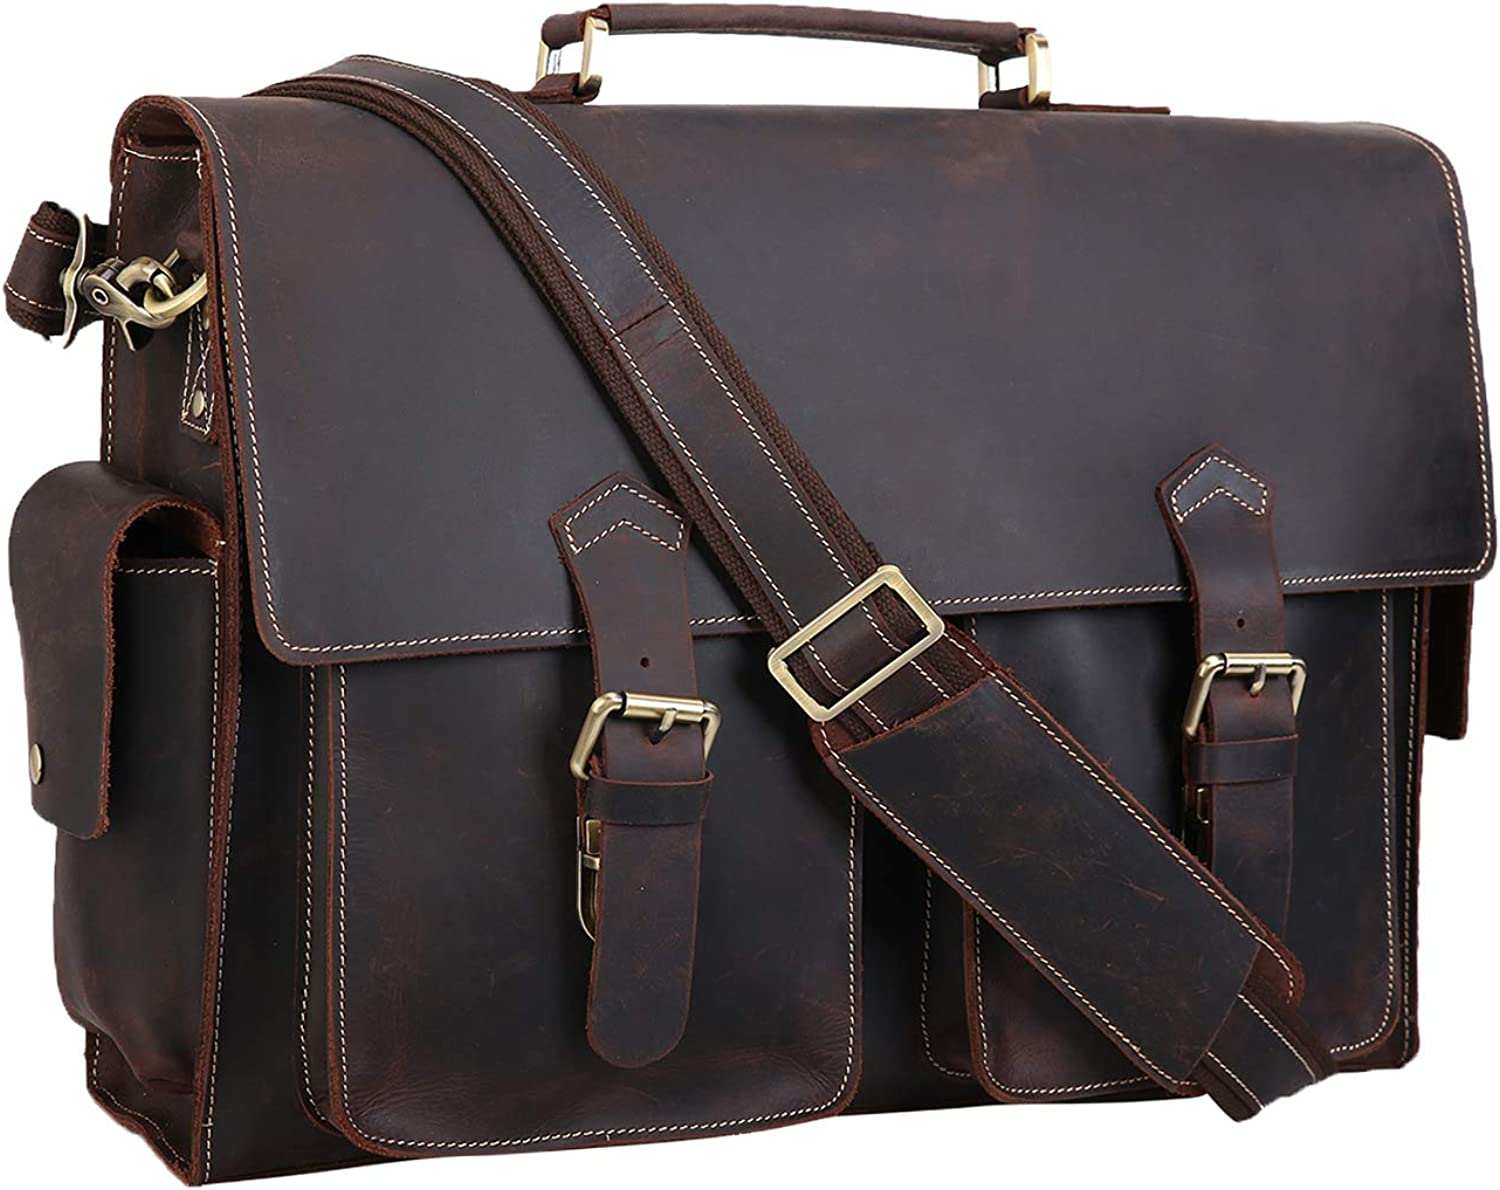 Polare 17 Mens Full Grain Leather Laptop Briefcase Business Messenger Bag Satchel With YKK Metal Zippers